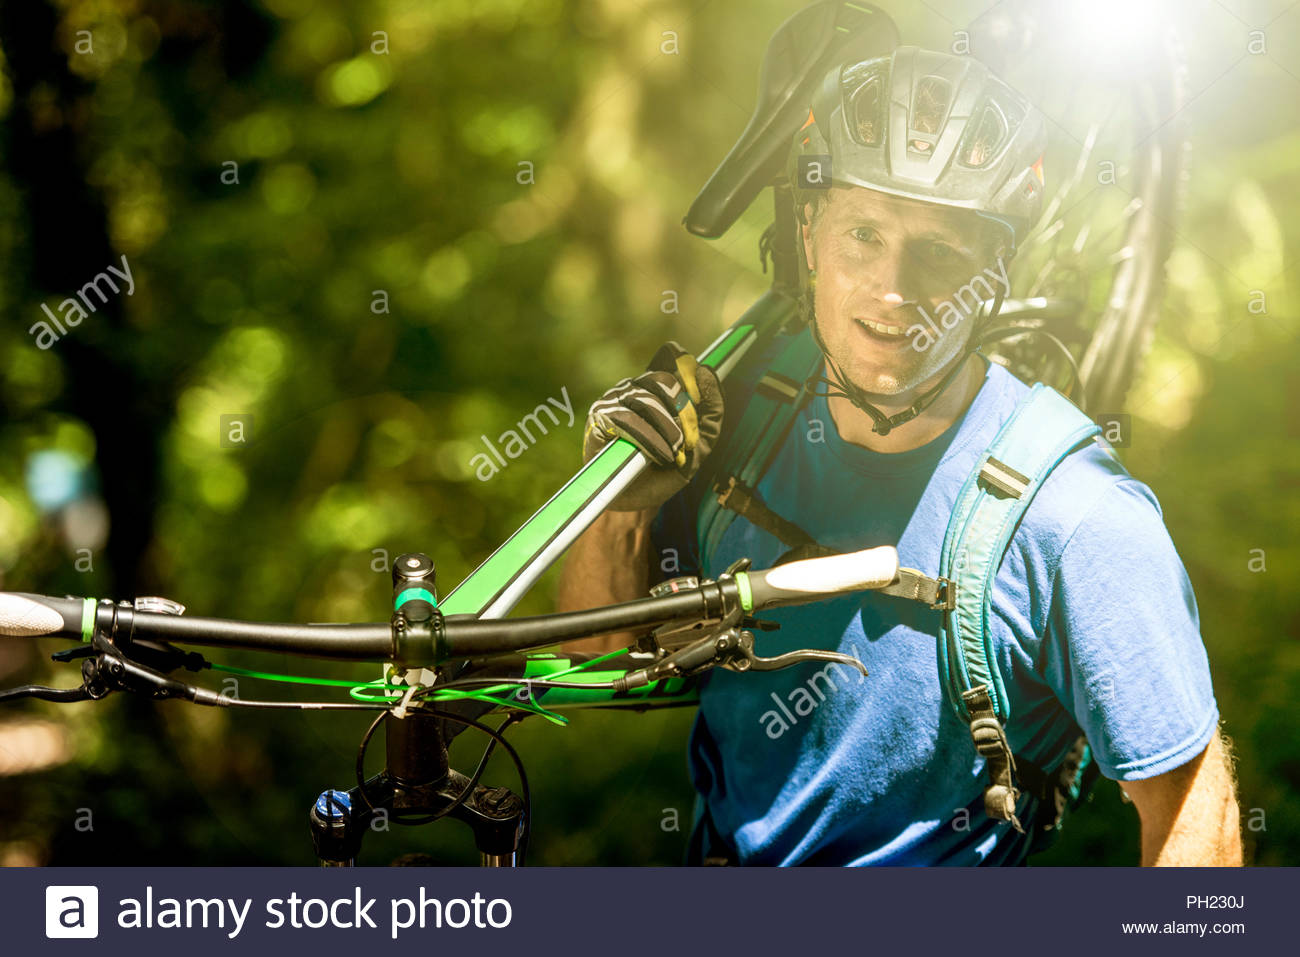 Man carrying mountain bike in forest Photo Stock